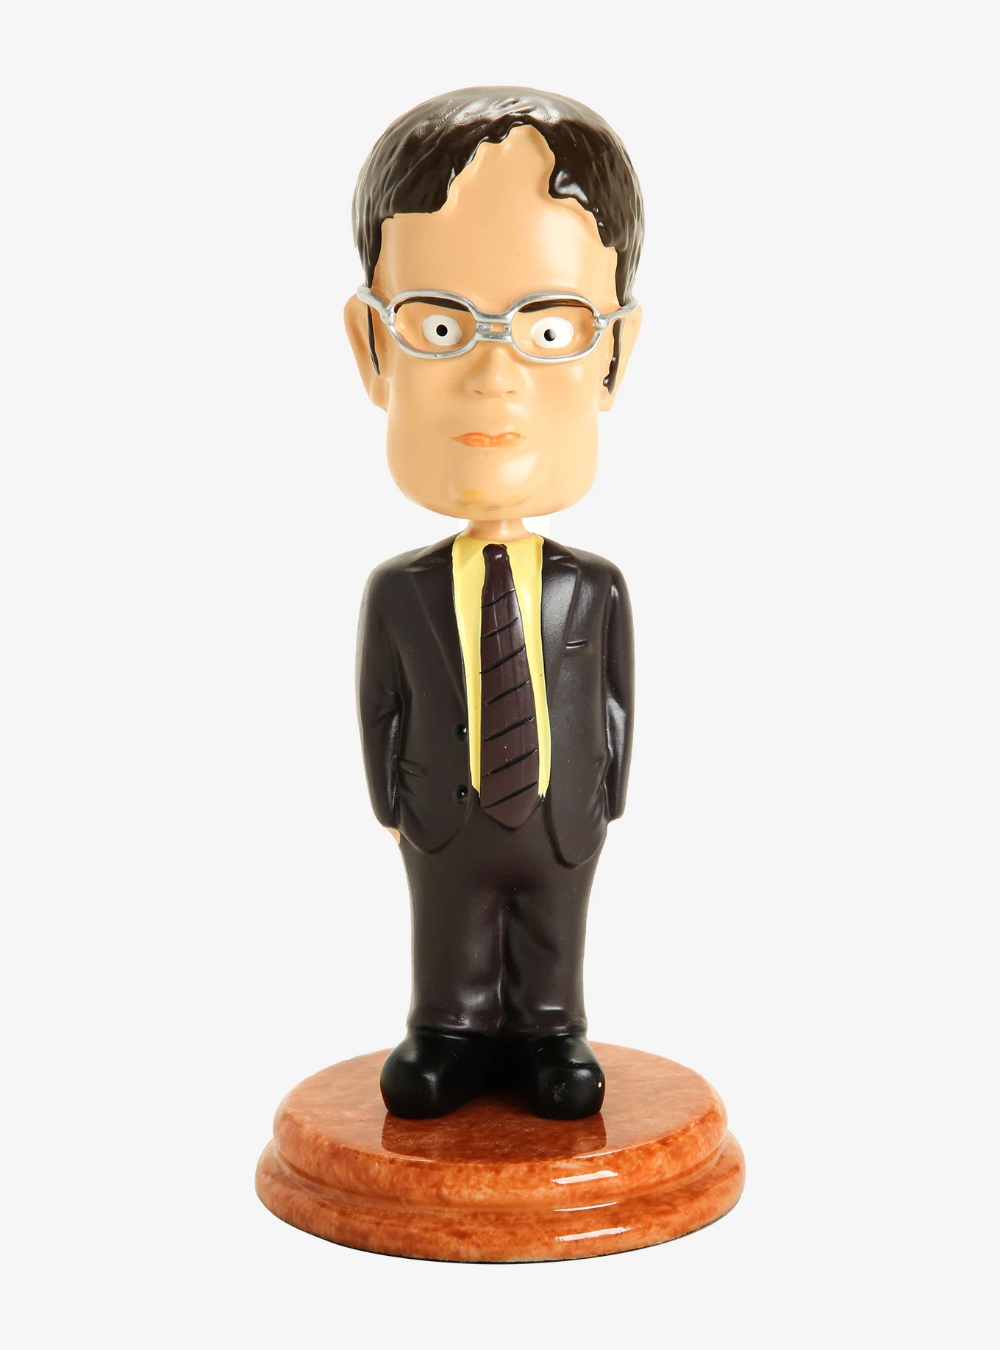 The Office Dwight Schrute Bobble Head The Office Dwight Bobble Head Dwight Schrute Bobblehead